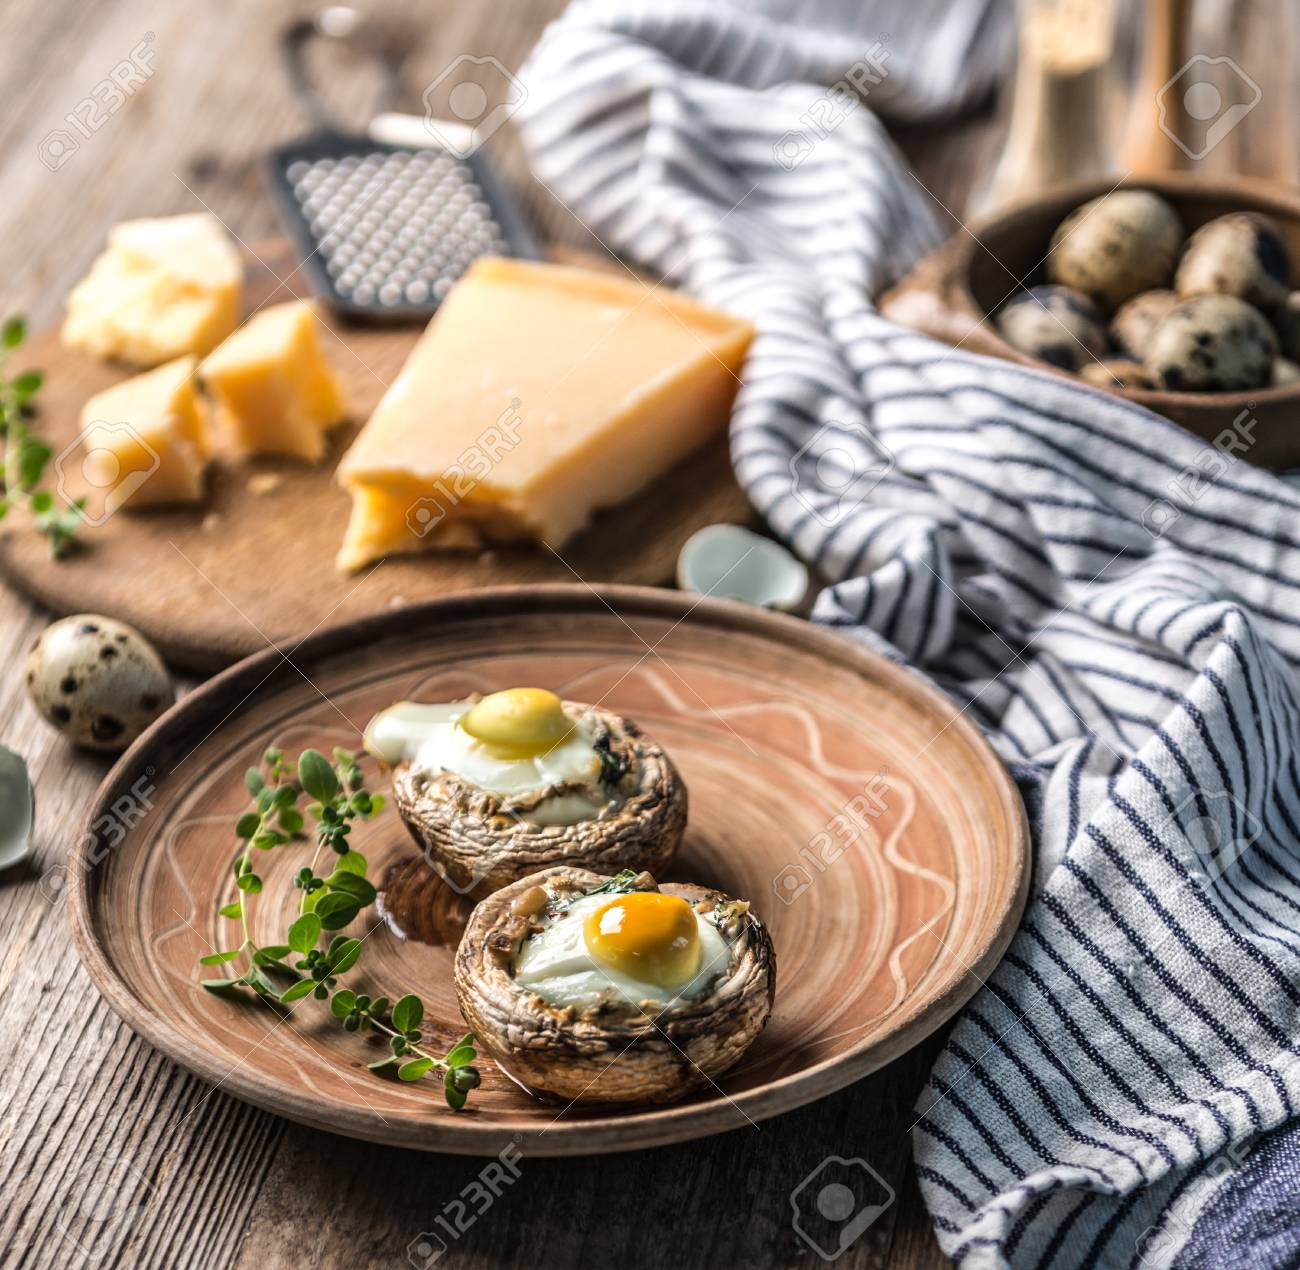 Stuffed mushrooms with quail eggs and parmesan cheese. - 91246149